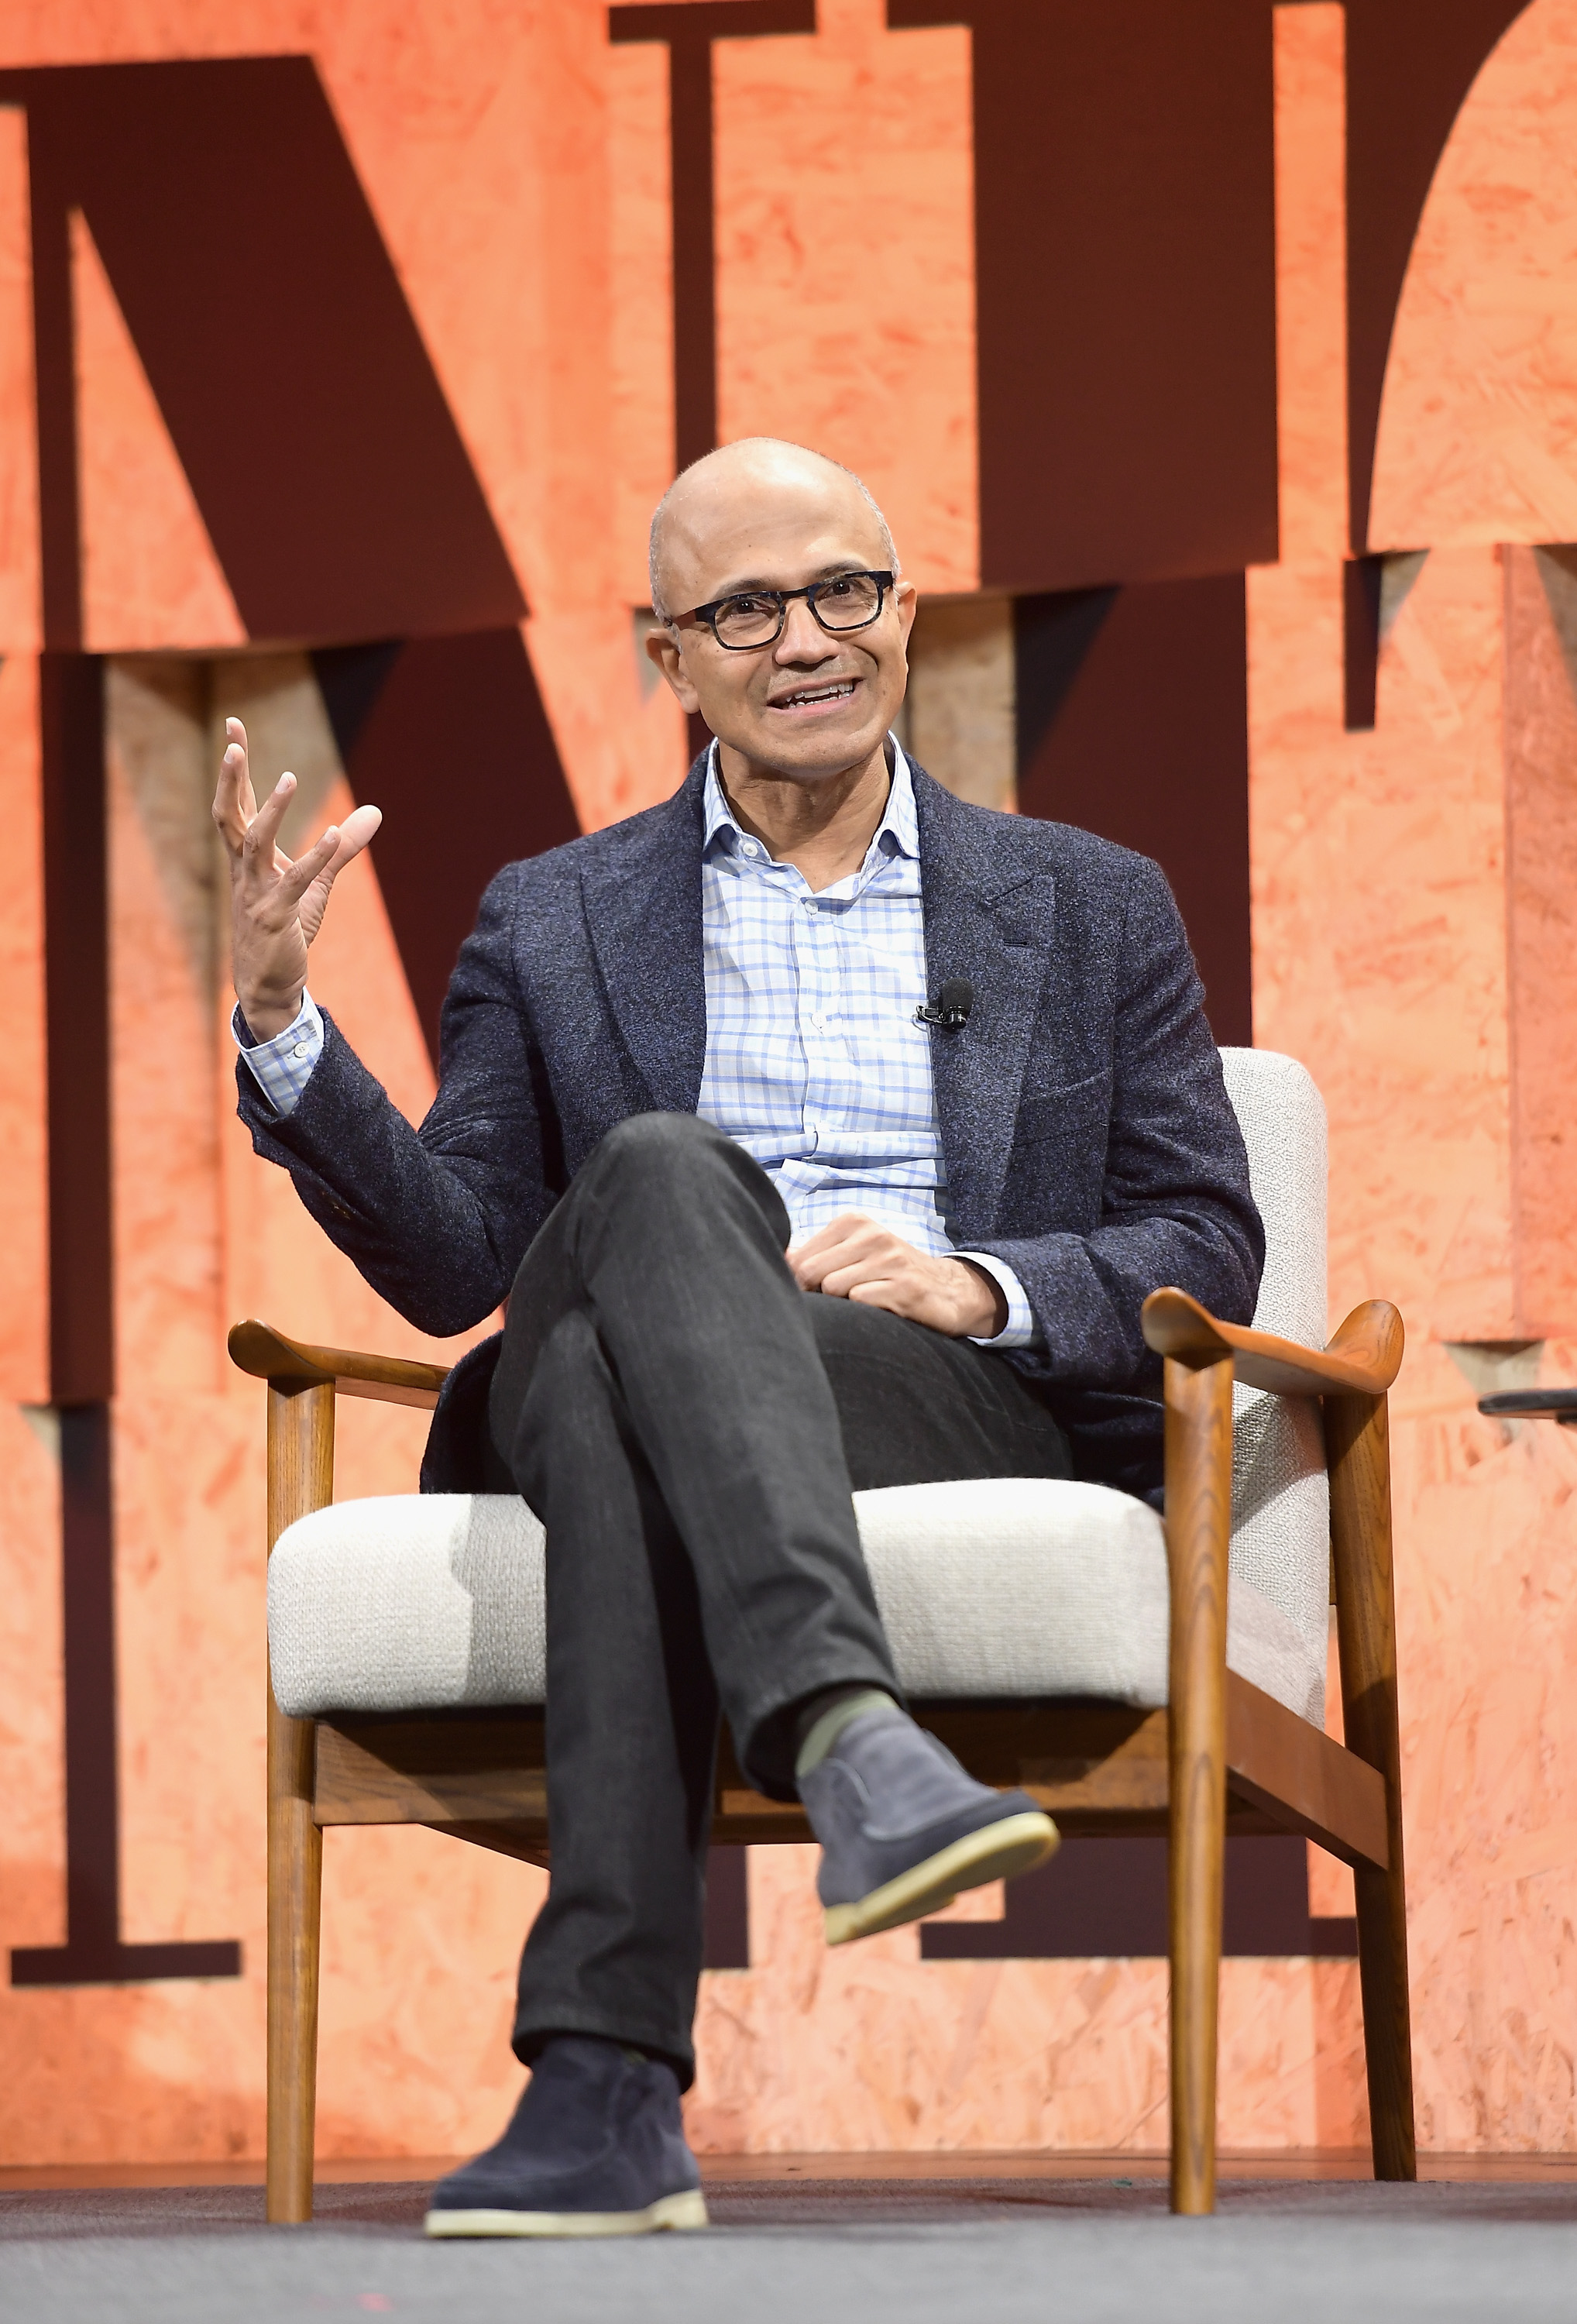 CEO of Microsoft Satya Nadella speaks onstage during the Vanity Fair New Establishment Summit at Wallis Annenberg Center for the Performing Arts on October 2, 2017 in Beverly Hills, California.